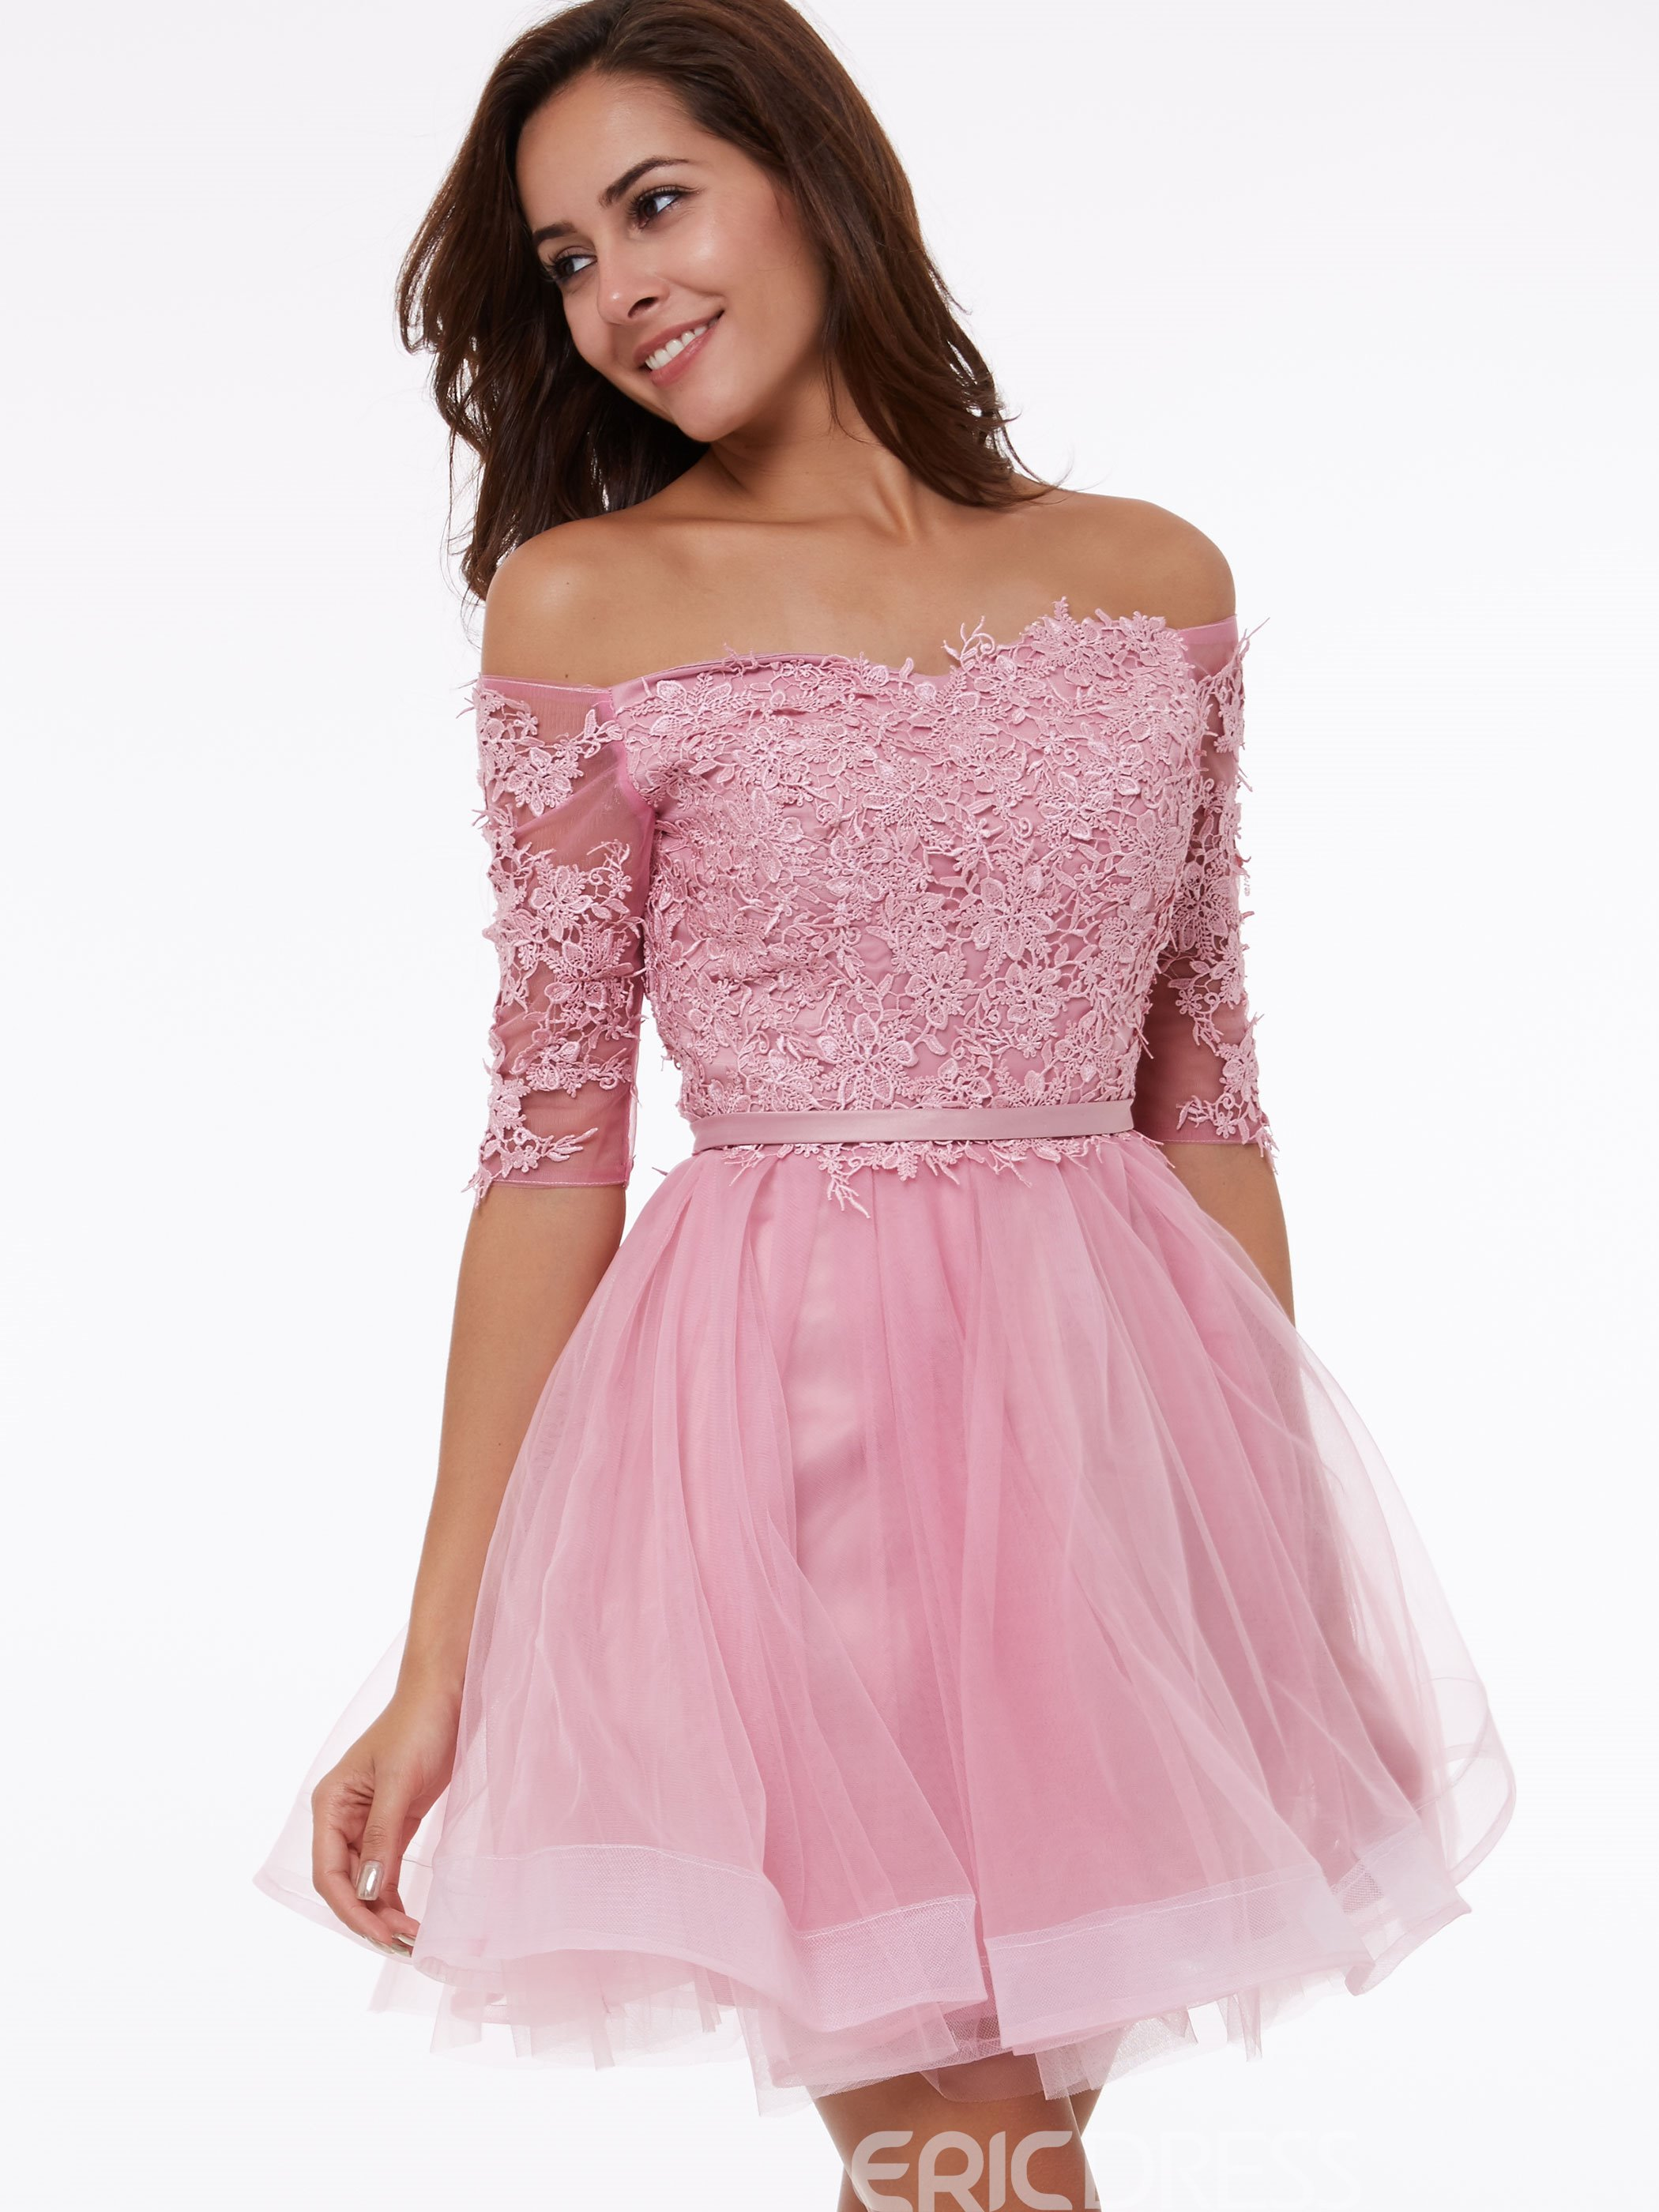 f915a3ed728 Ericdress A-Line Off-the-Shoulder Half Sleeves Appliques Short Homecoming  Dress